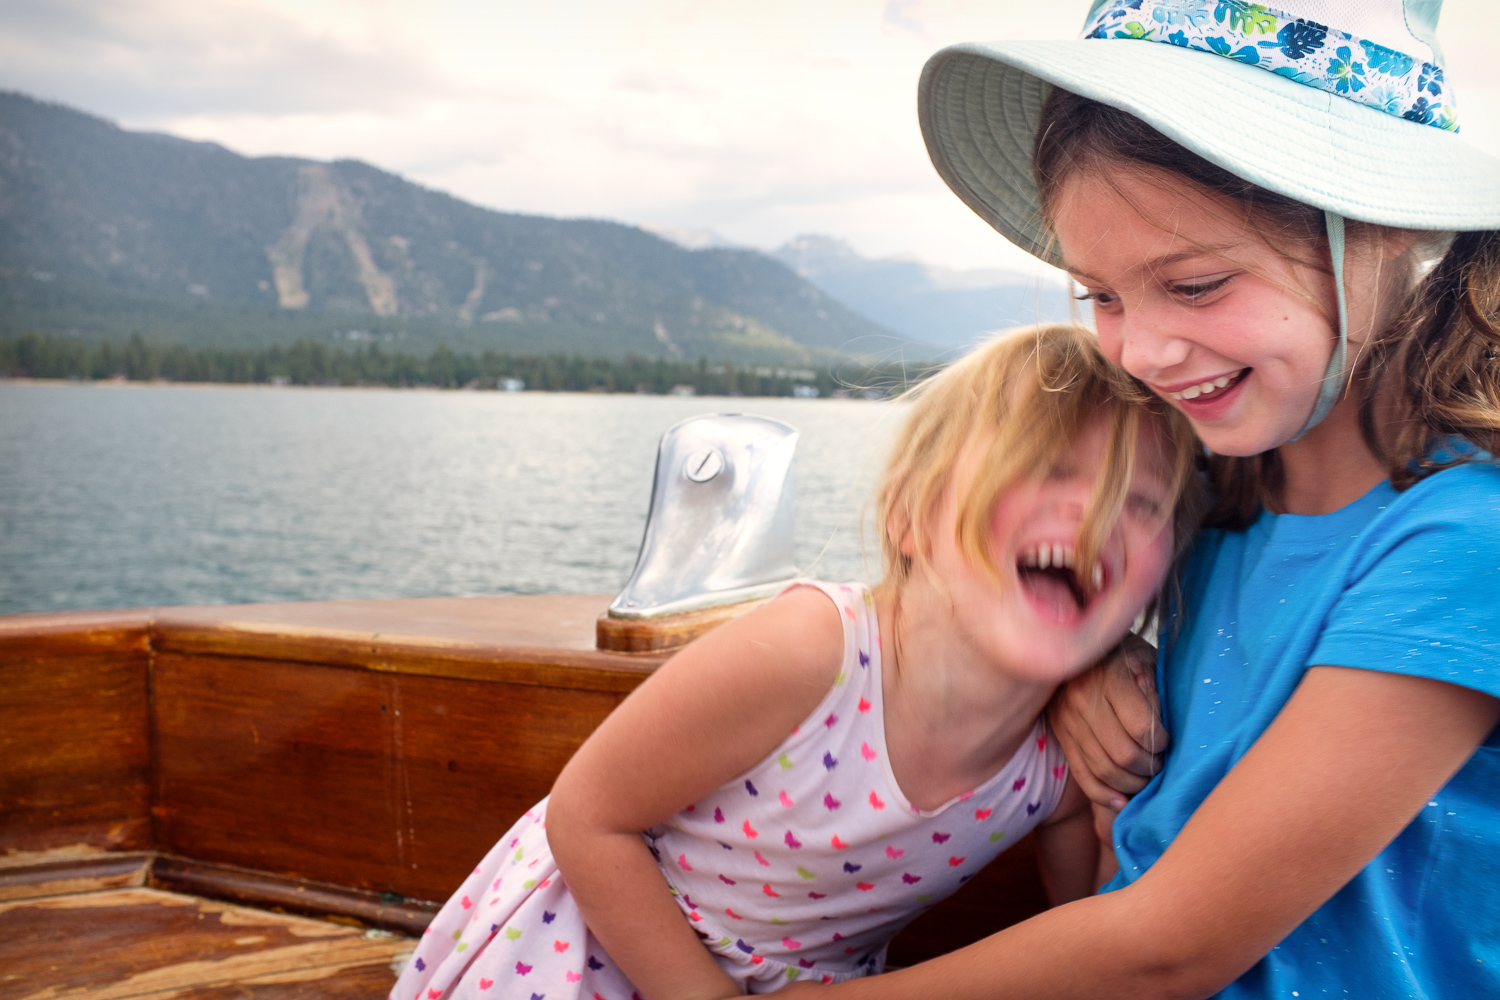 Goofing around on a lake cruise